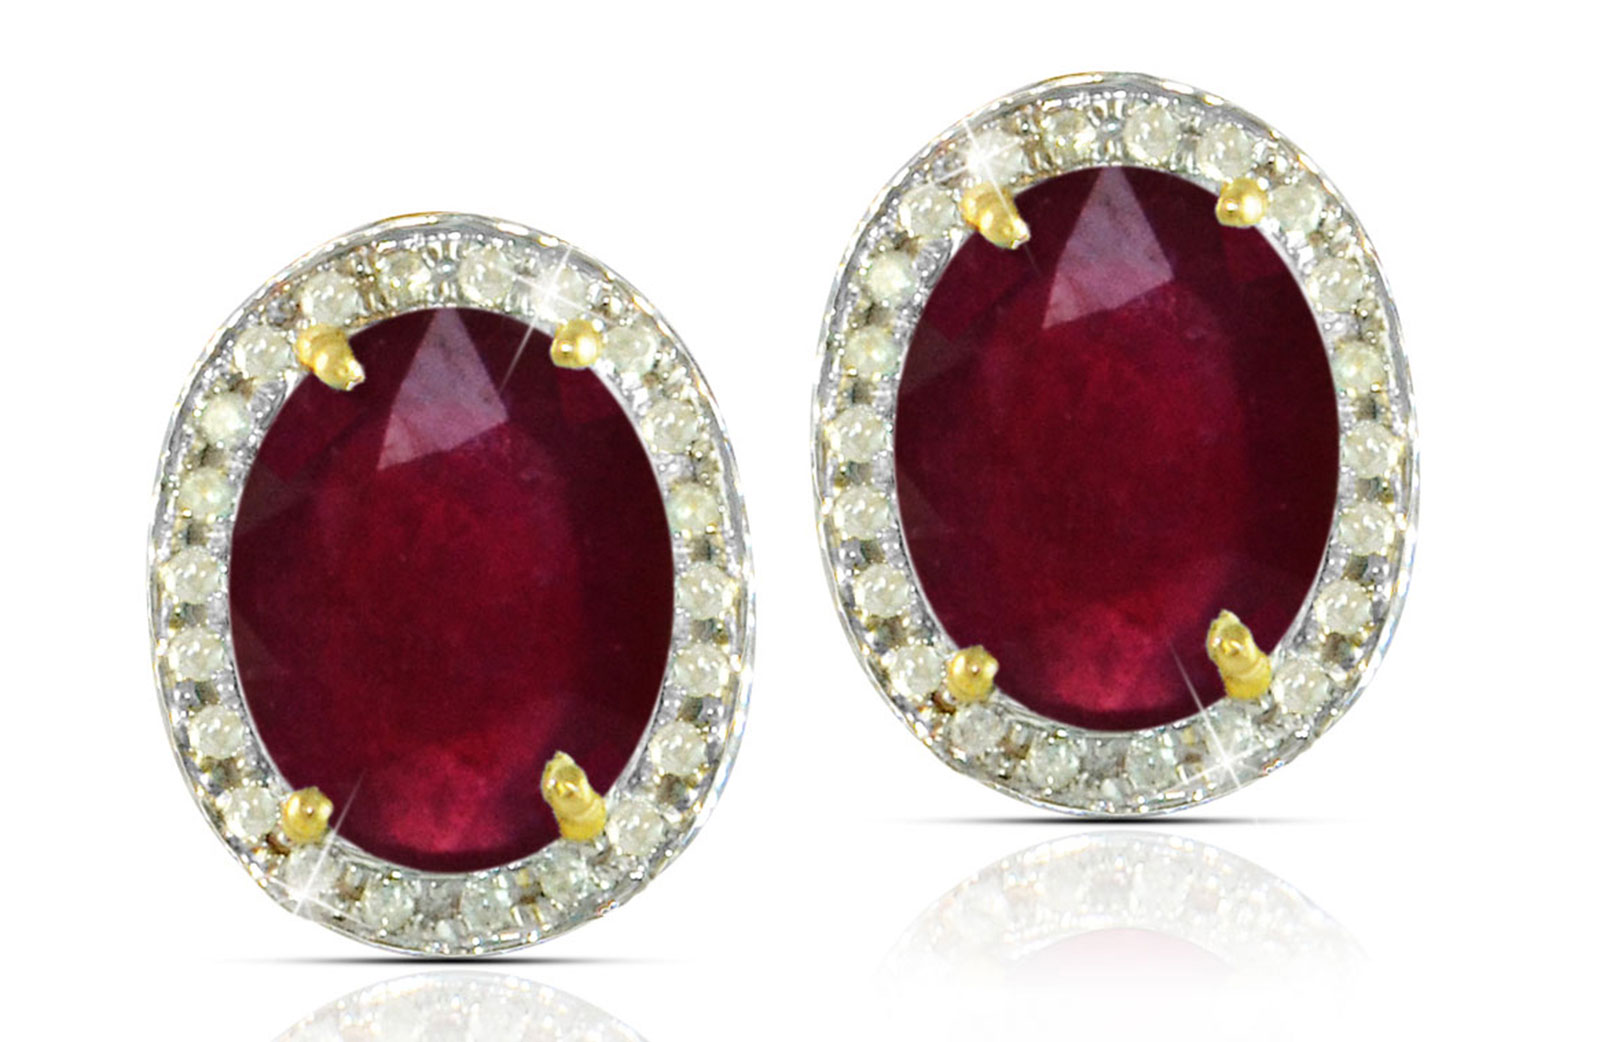 Vera Perla 18k  Gold 10mm Genuine Oval  Cut Ruby 0.24Ct Genuine Diamonds earrings